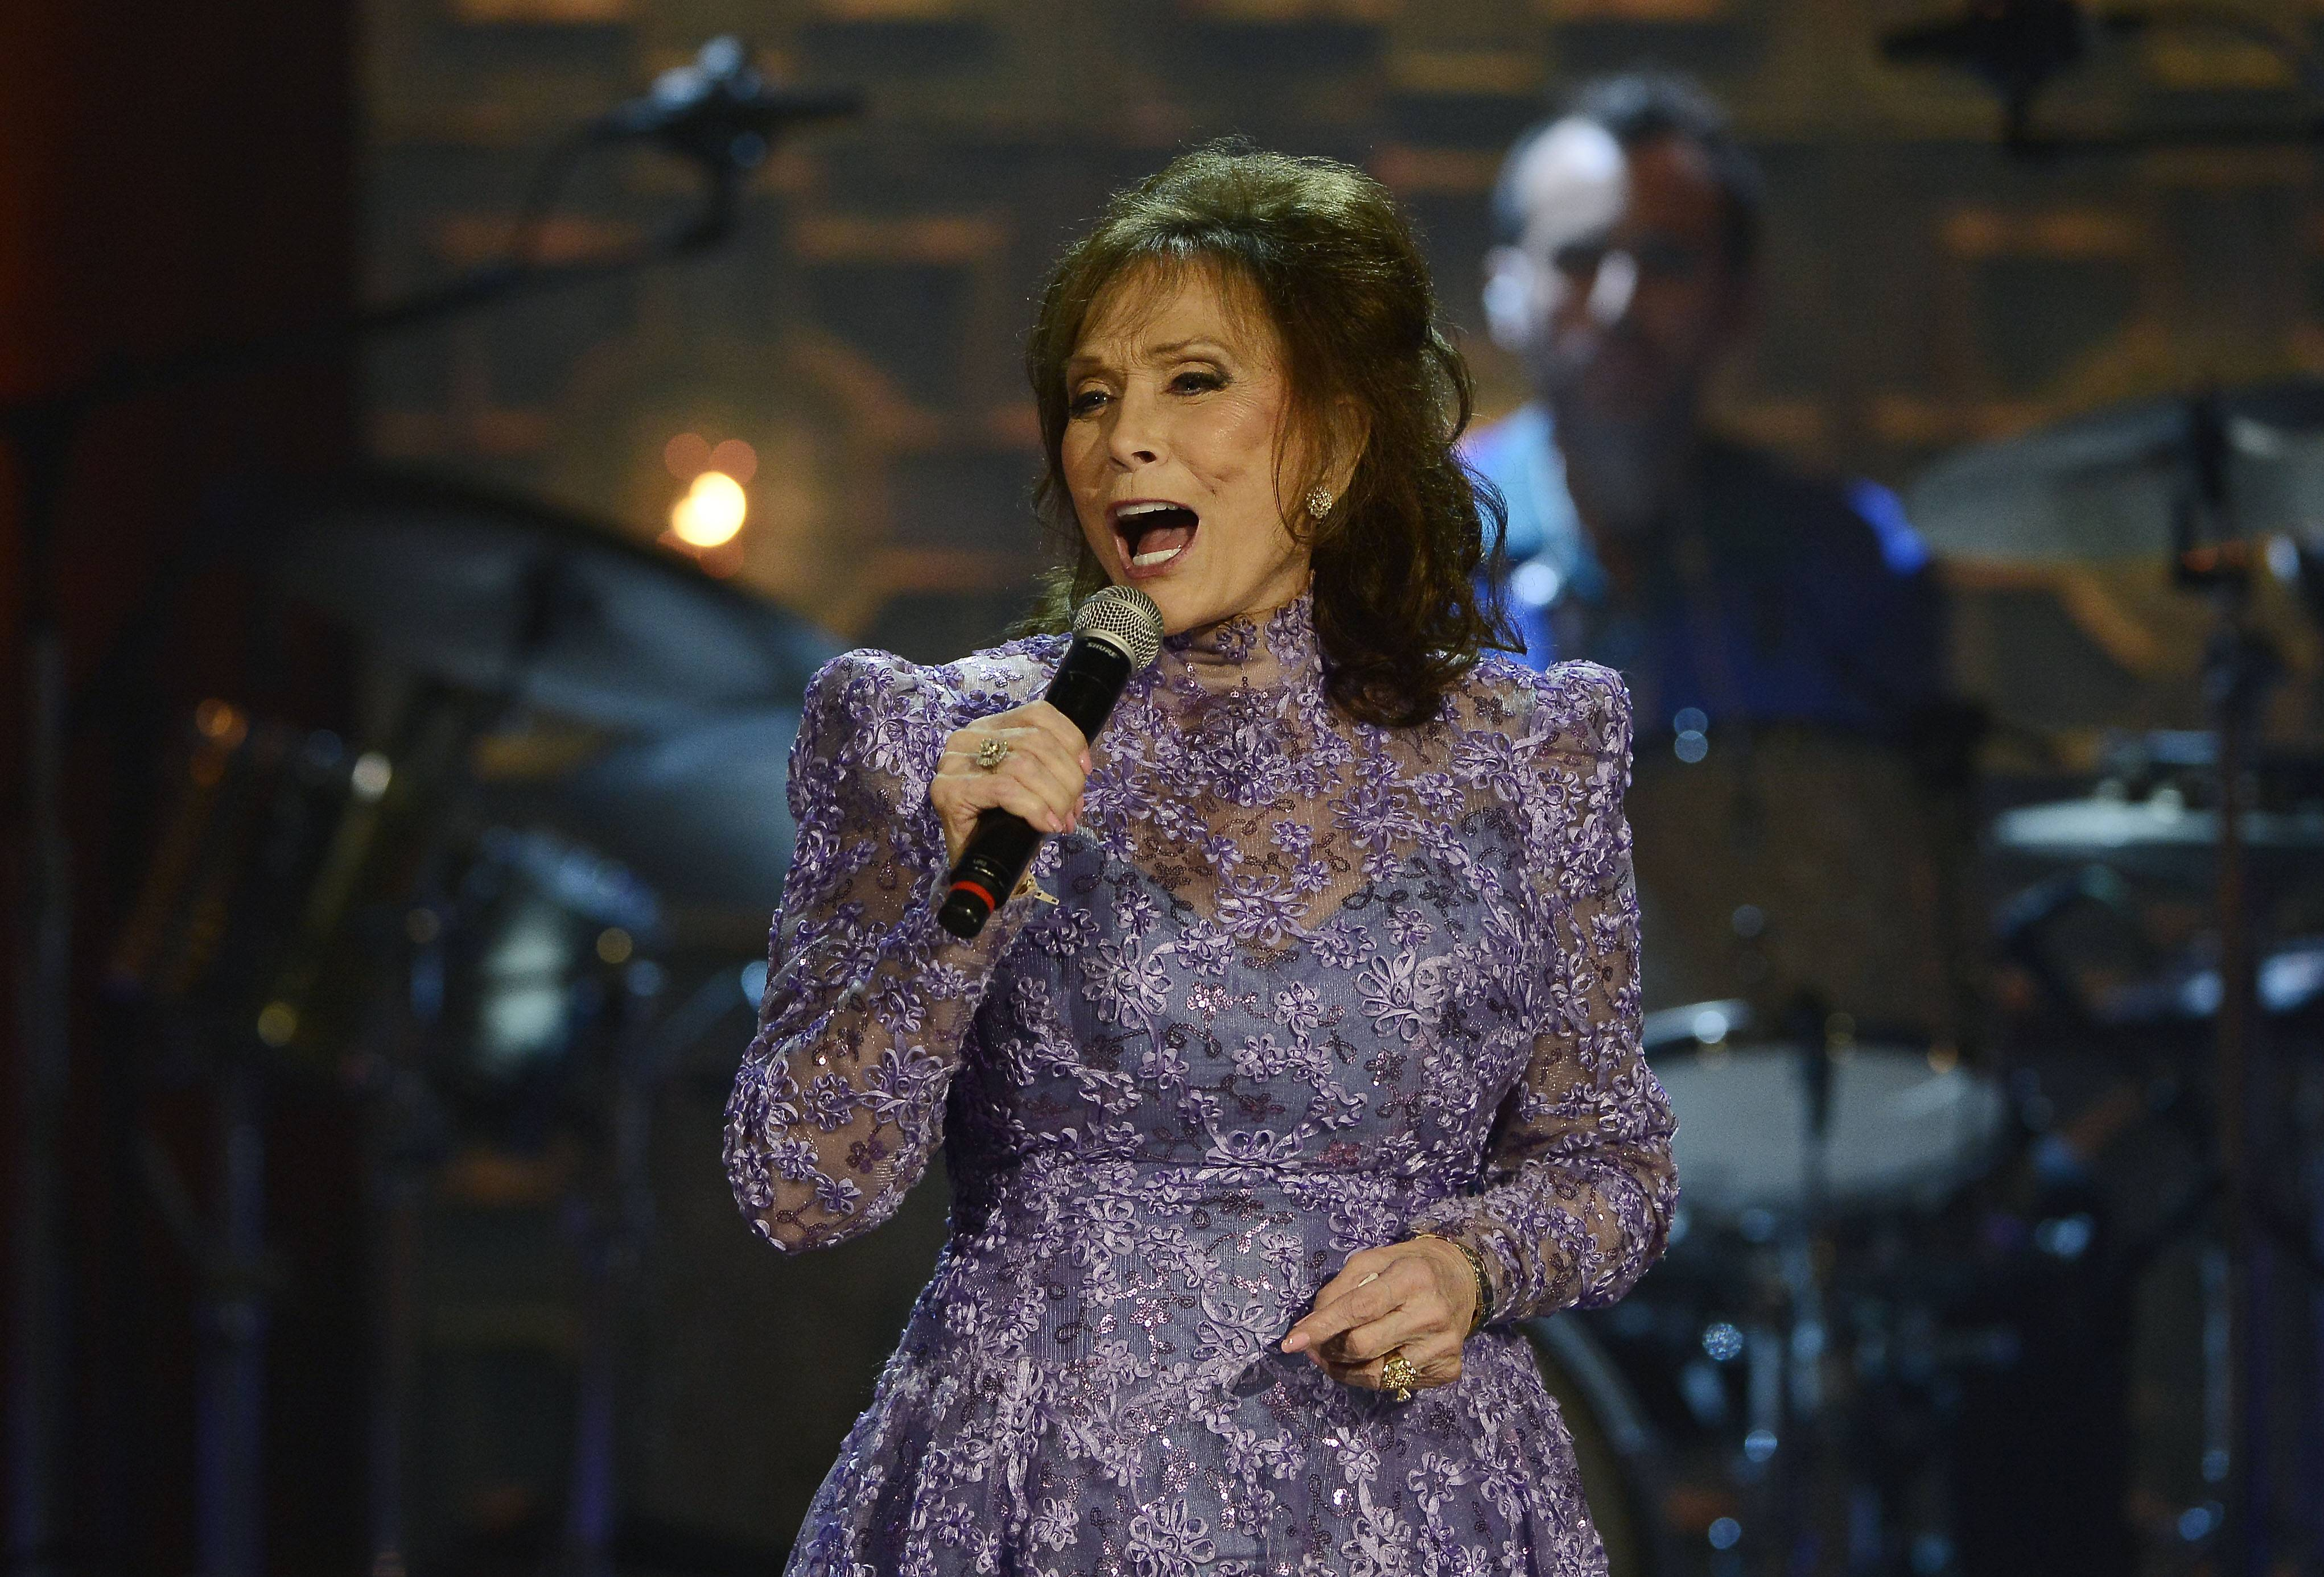 Loretta Lynn performs during the Americana Music Honors and Awards show last September in Nashville, Tennessee.